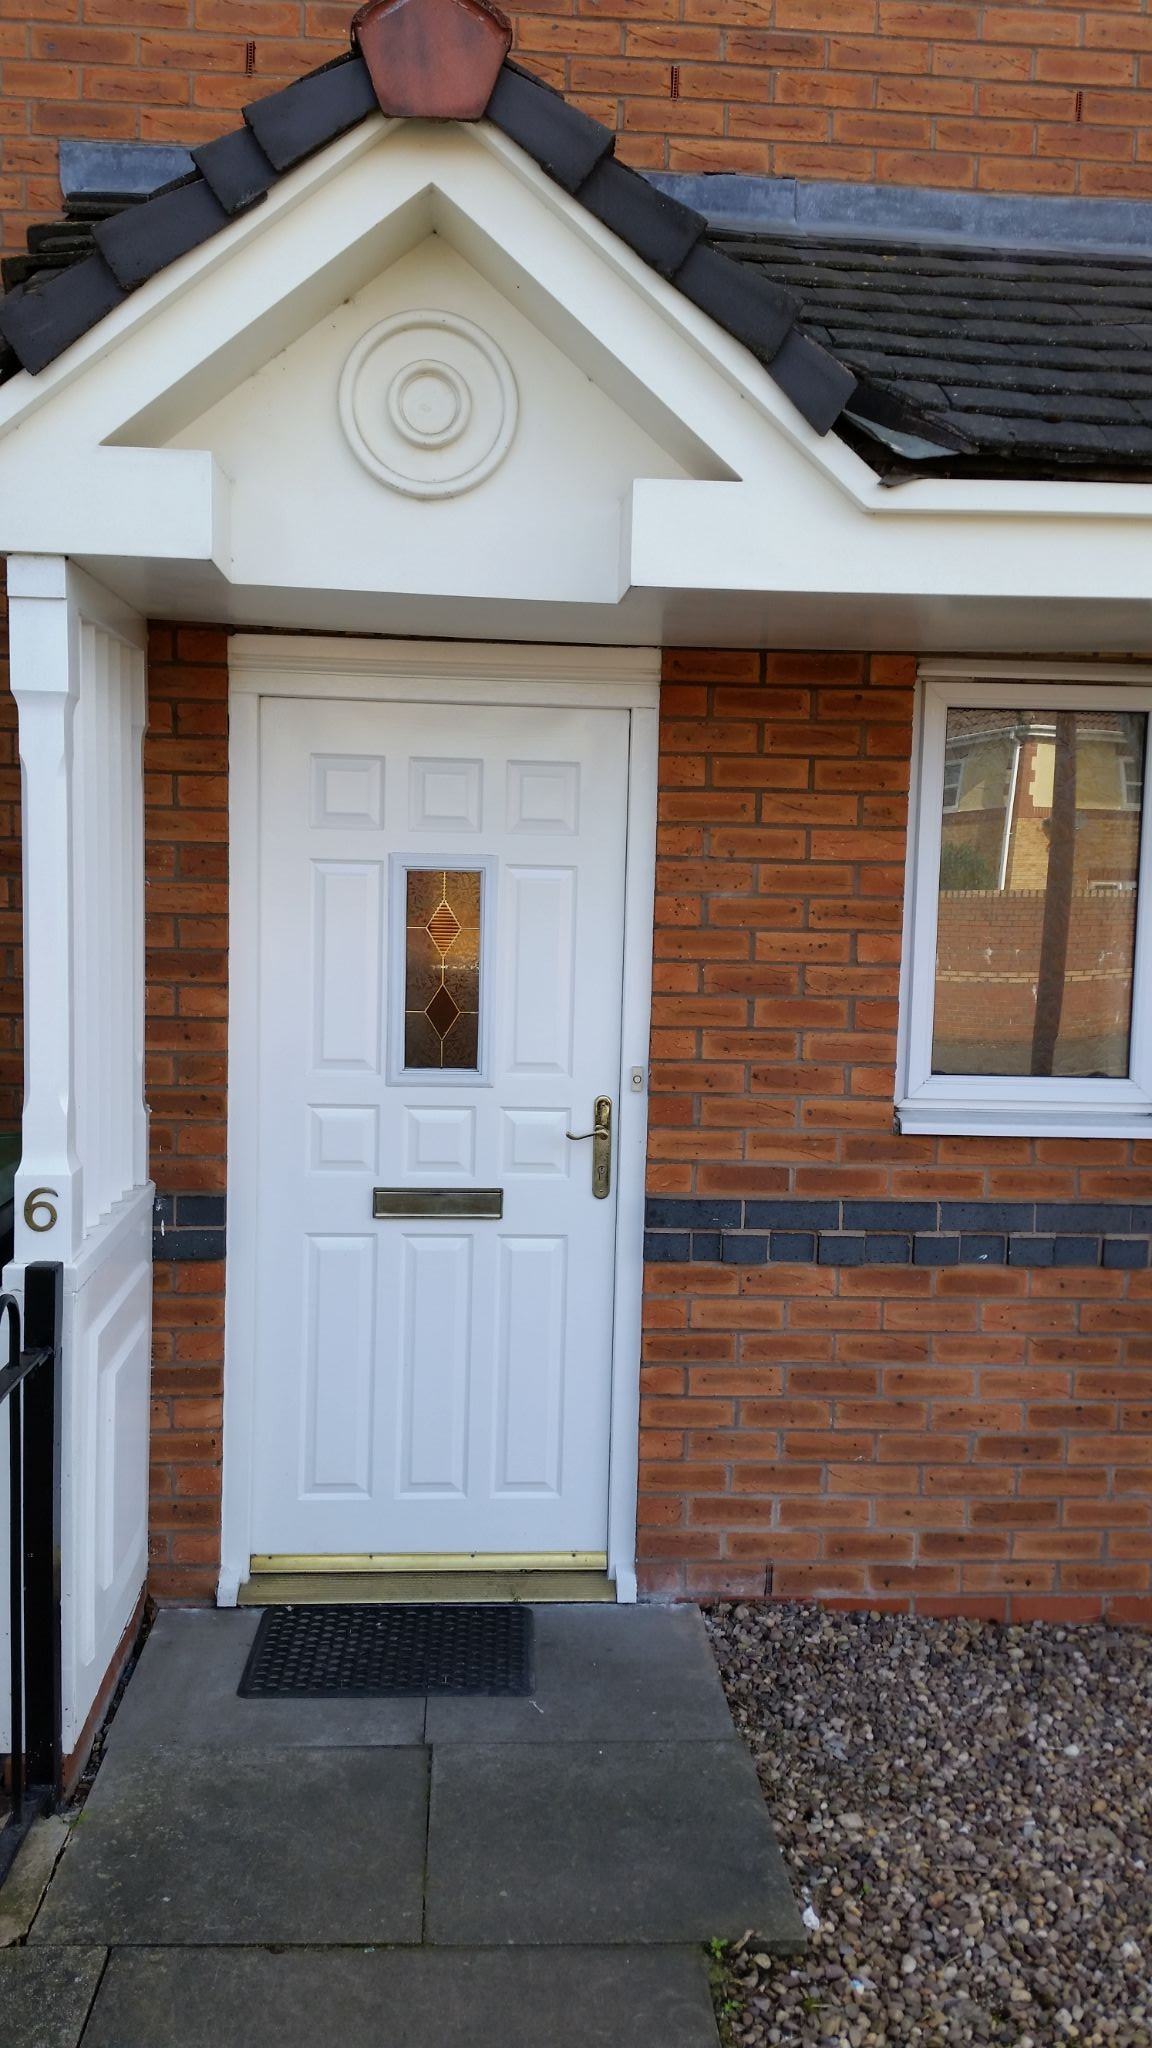 2 Bed Ground Floor Flat/apartment For Sale - Own Secure Front Door